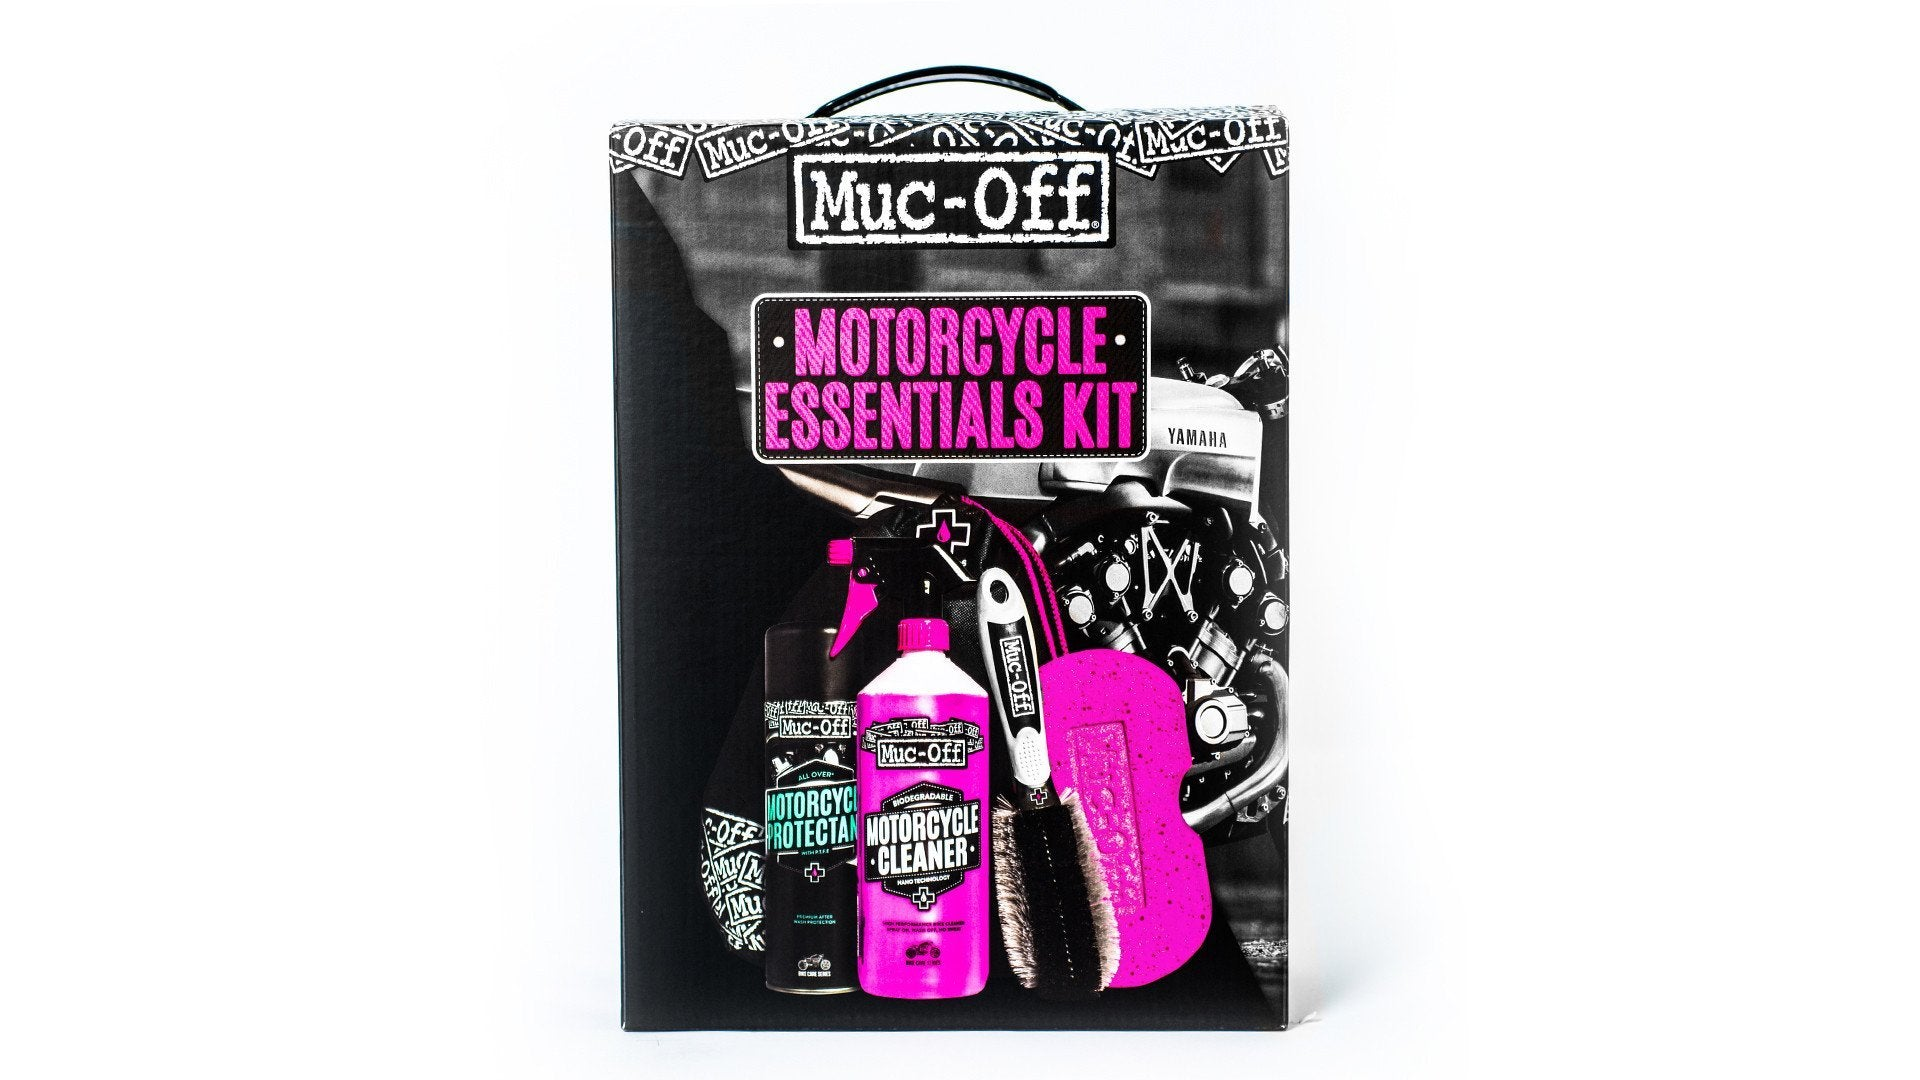 Motorcycle Essentials Kit - Muc-Off